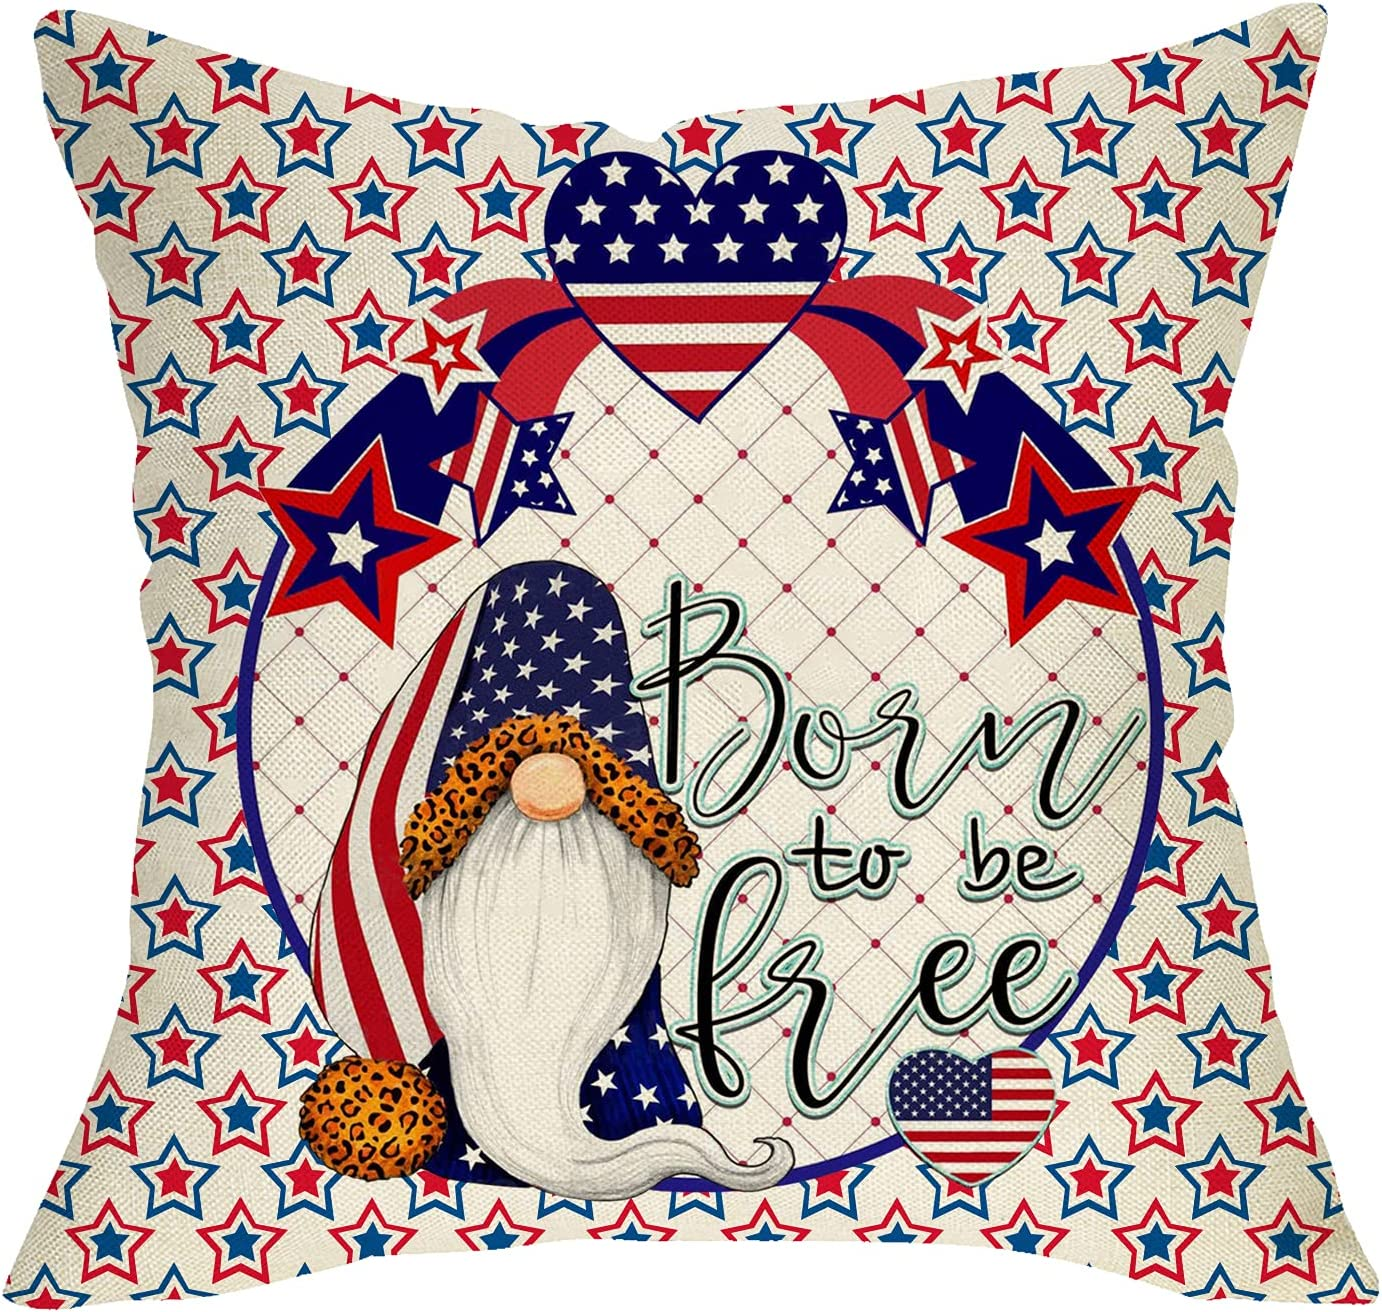 Pycat Born to be Free Throw Memphis New products, world's highest quality popular! Mall Pillow Couch 18x18 Sofa for Cover A